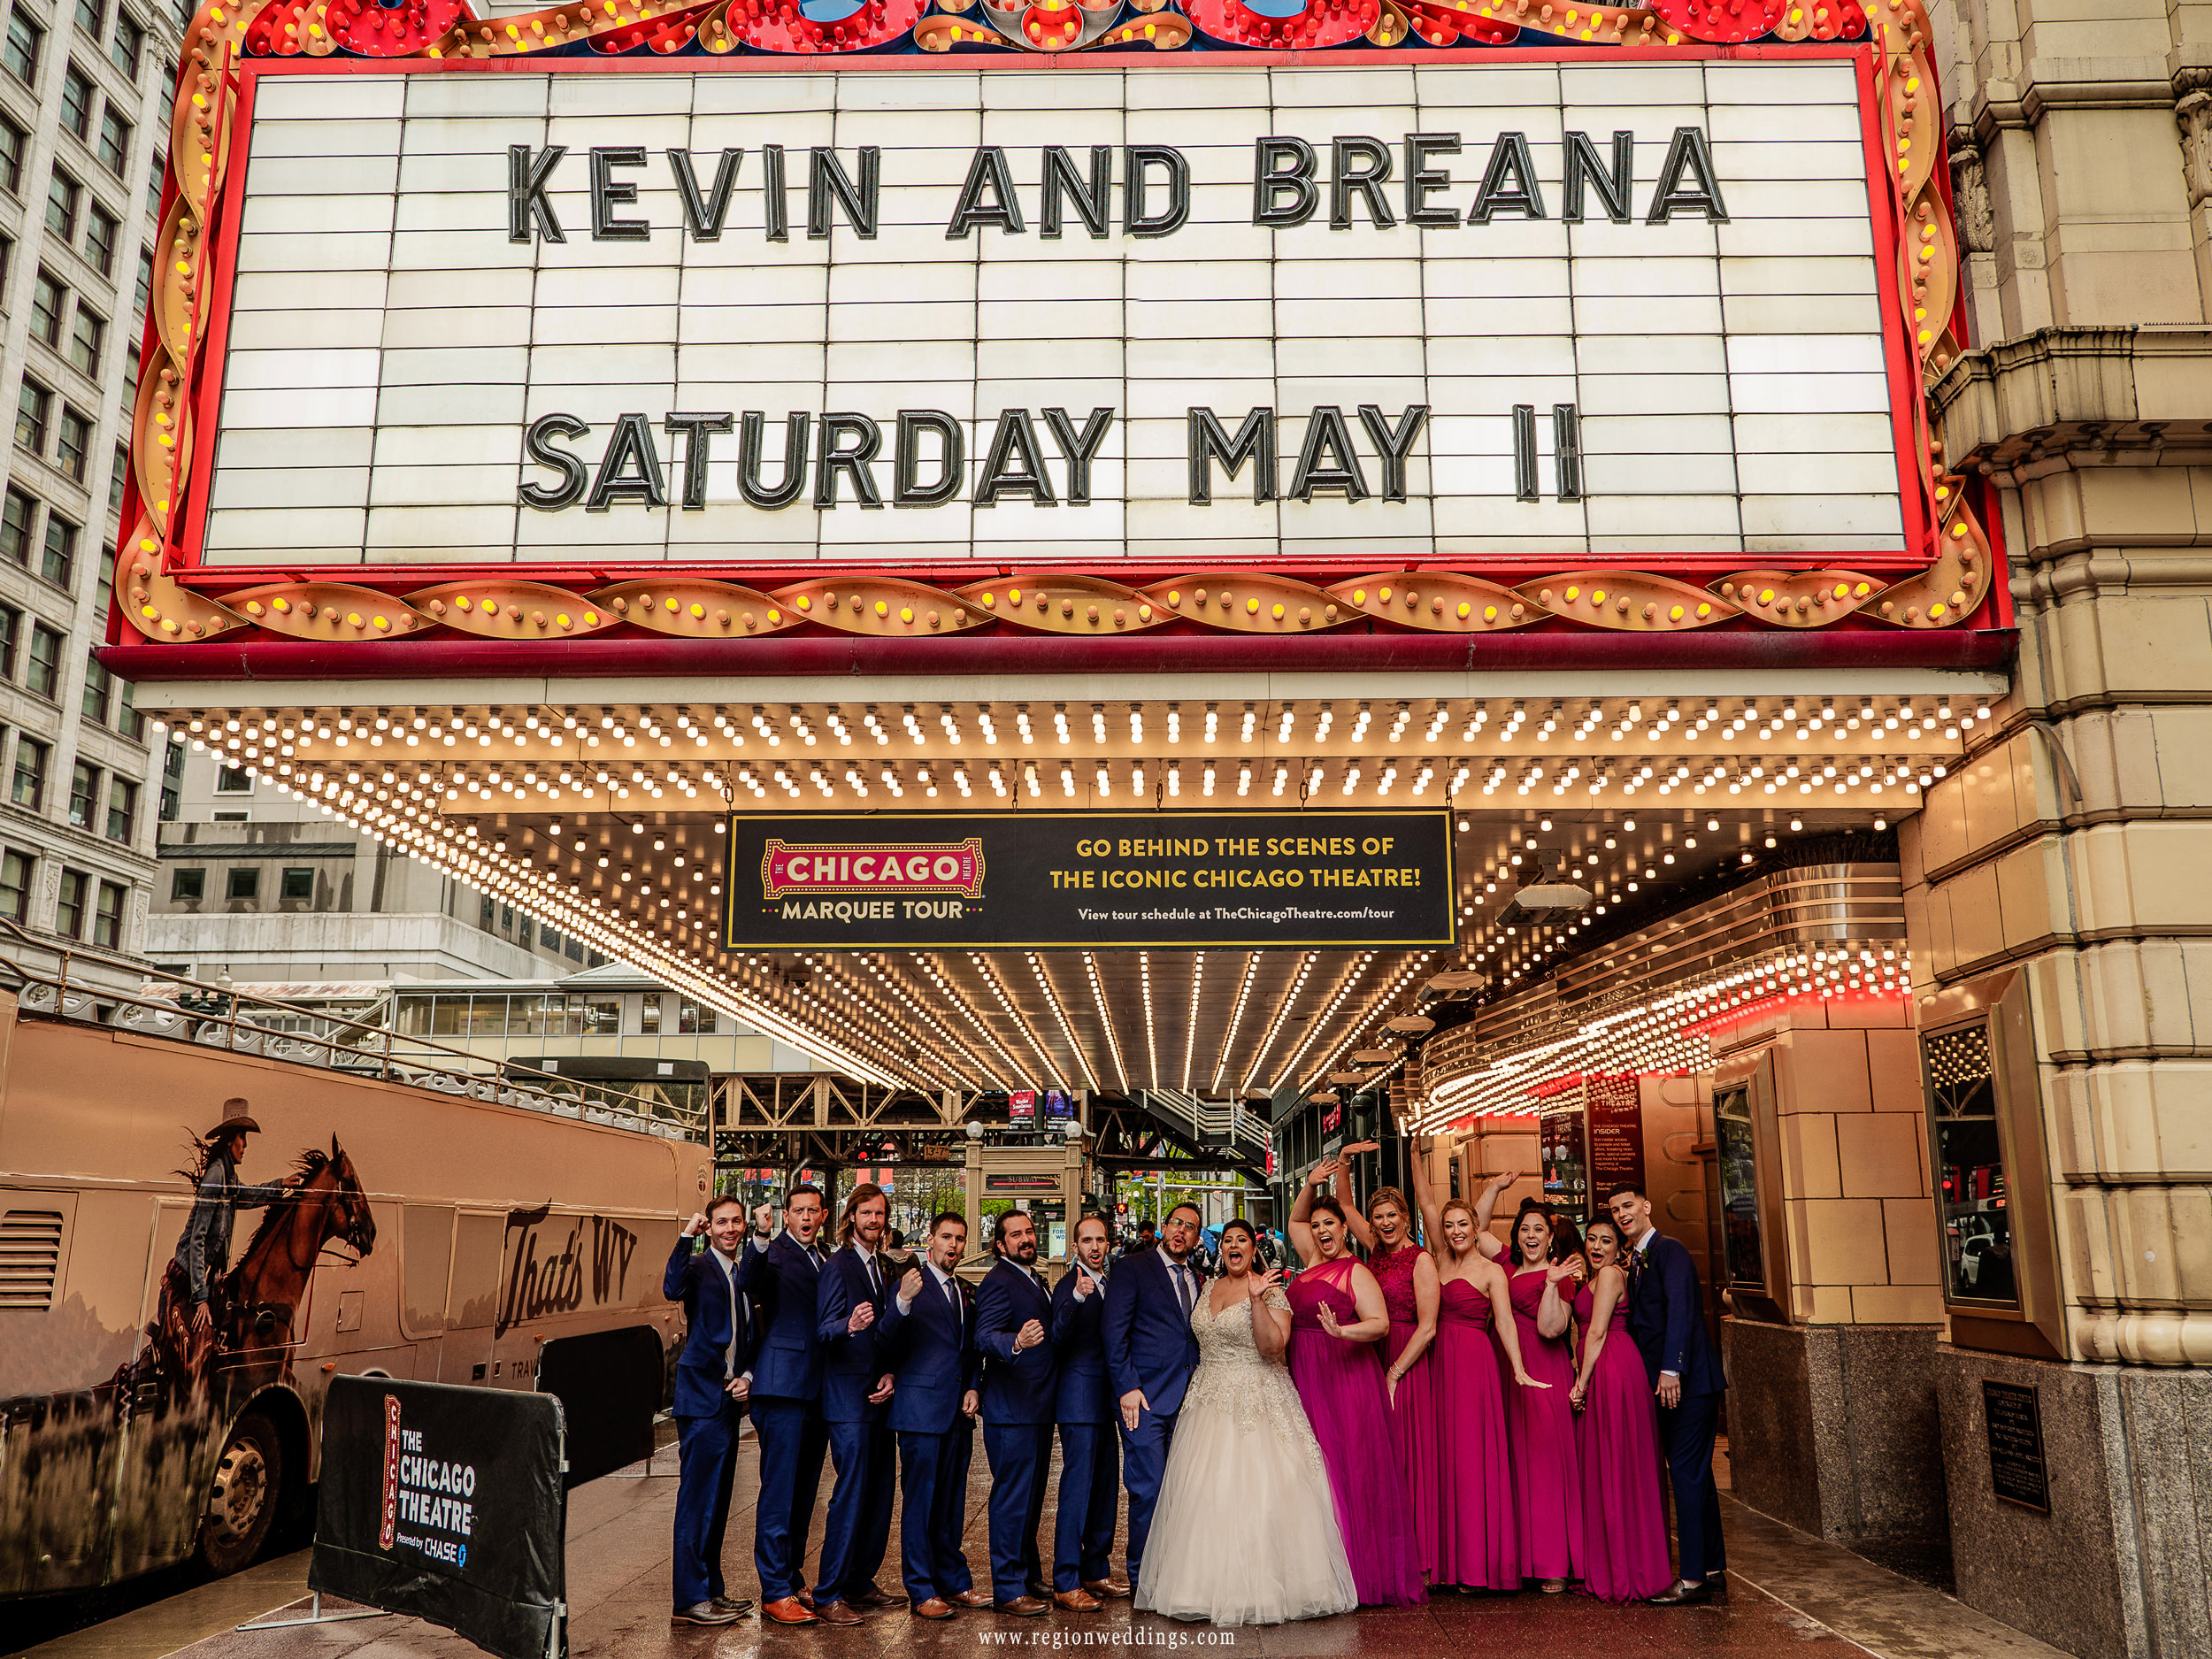 Wedding party group photo underneath the marquee of the Chicago Theater.